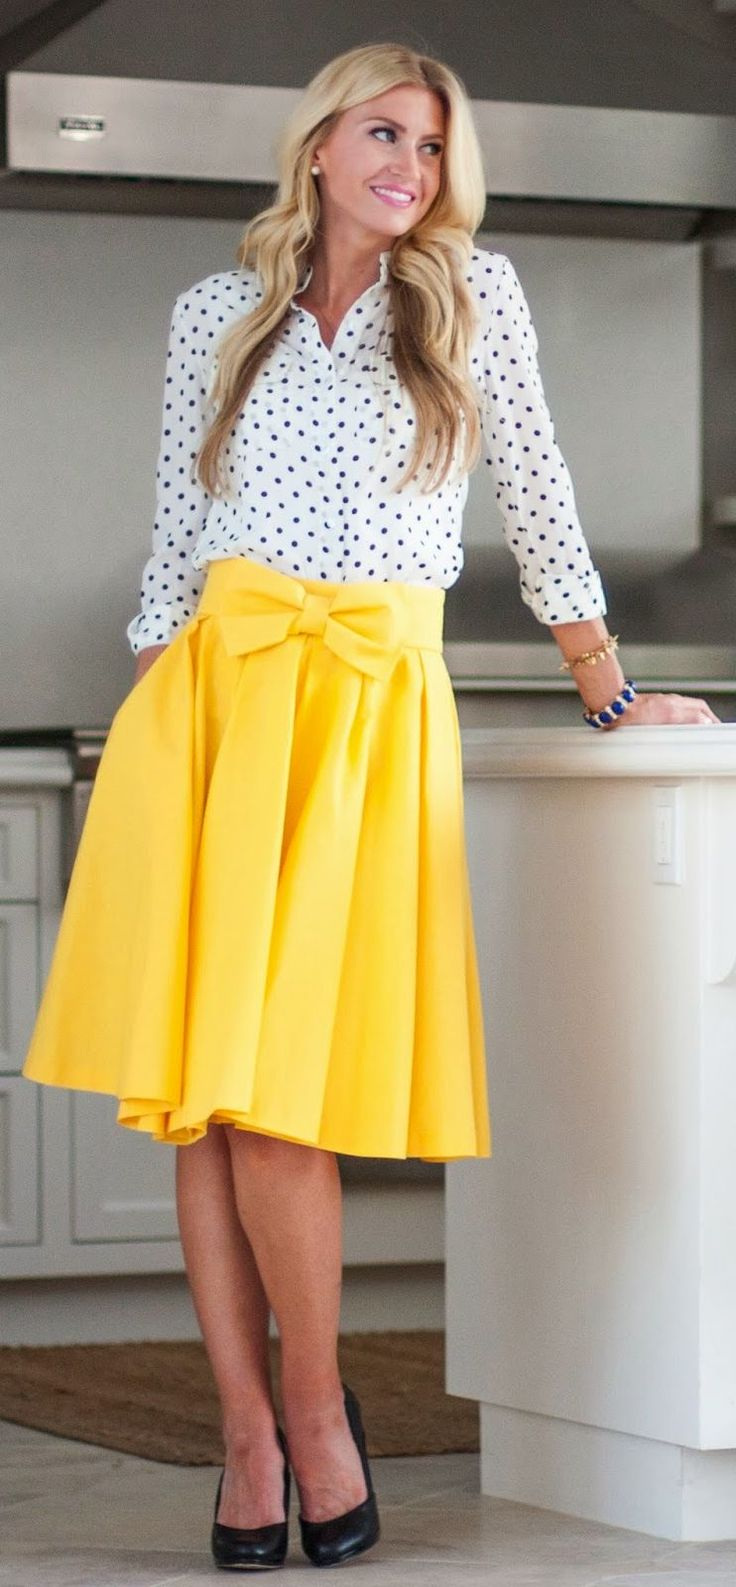 marvelous cute modern outfits background